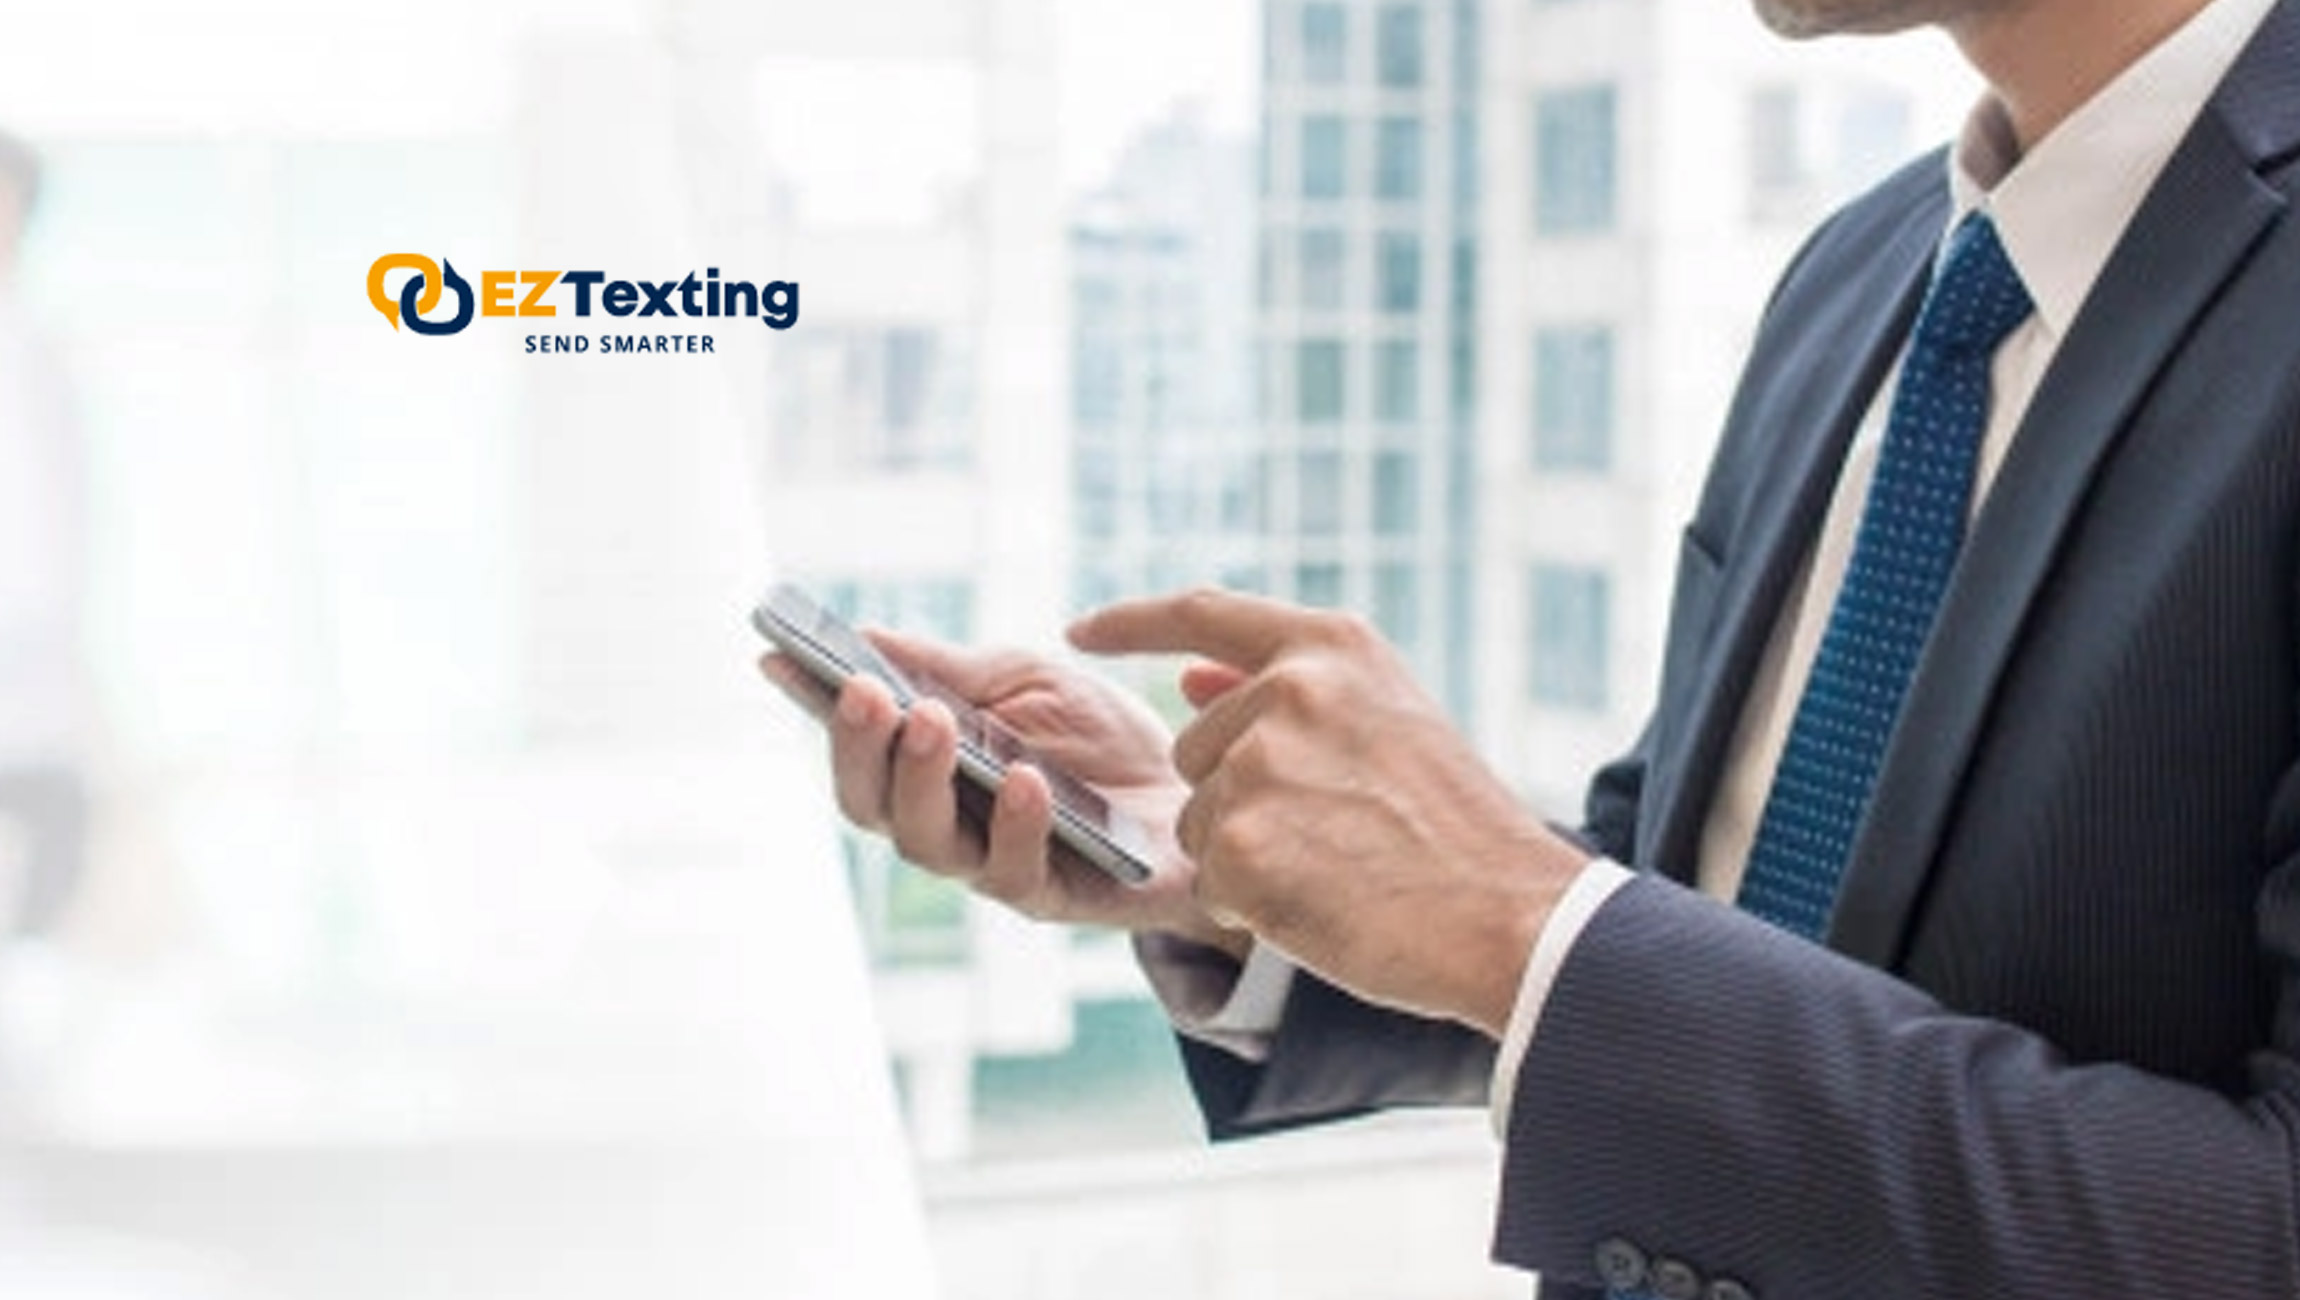 EZ Texting Continues Record Growth in Text Communications Market